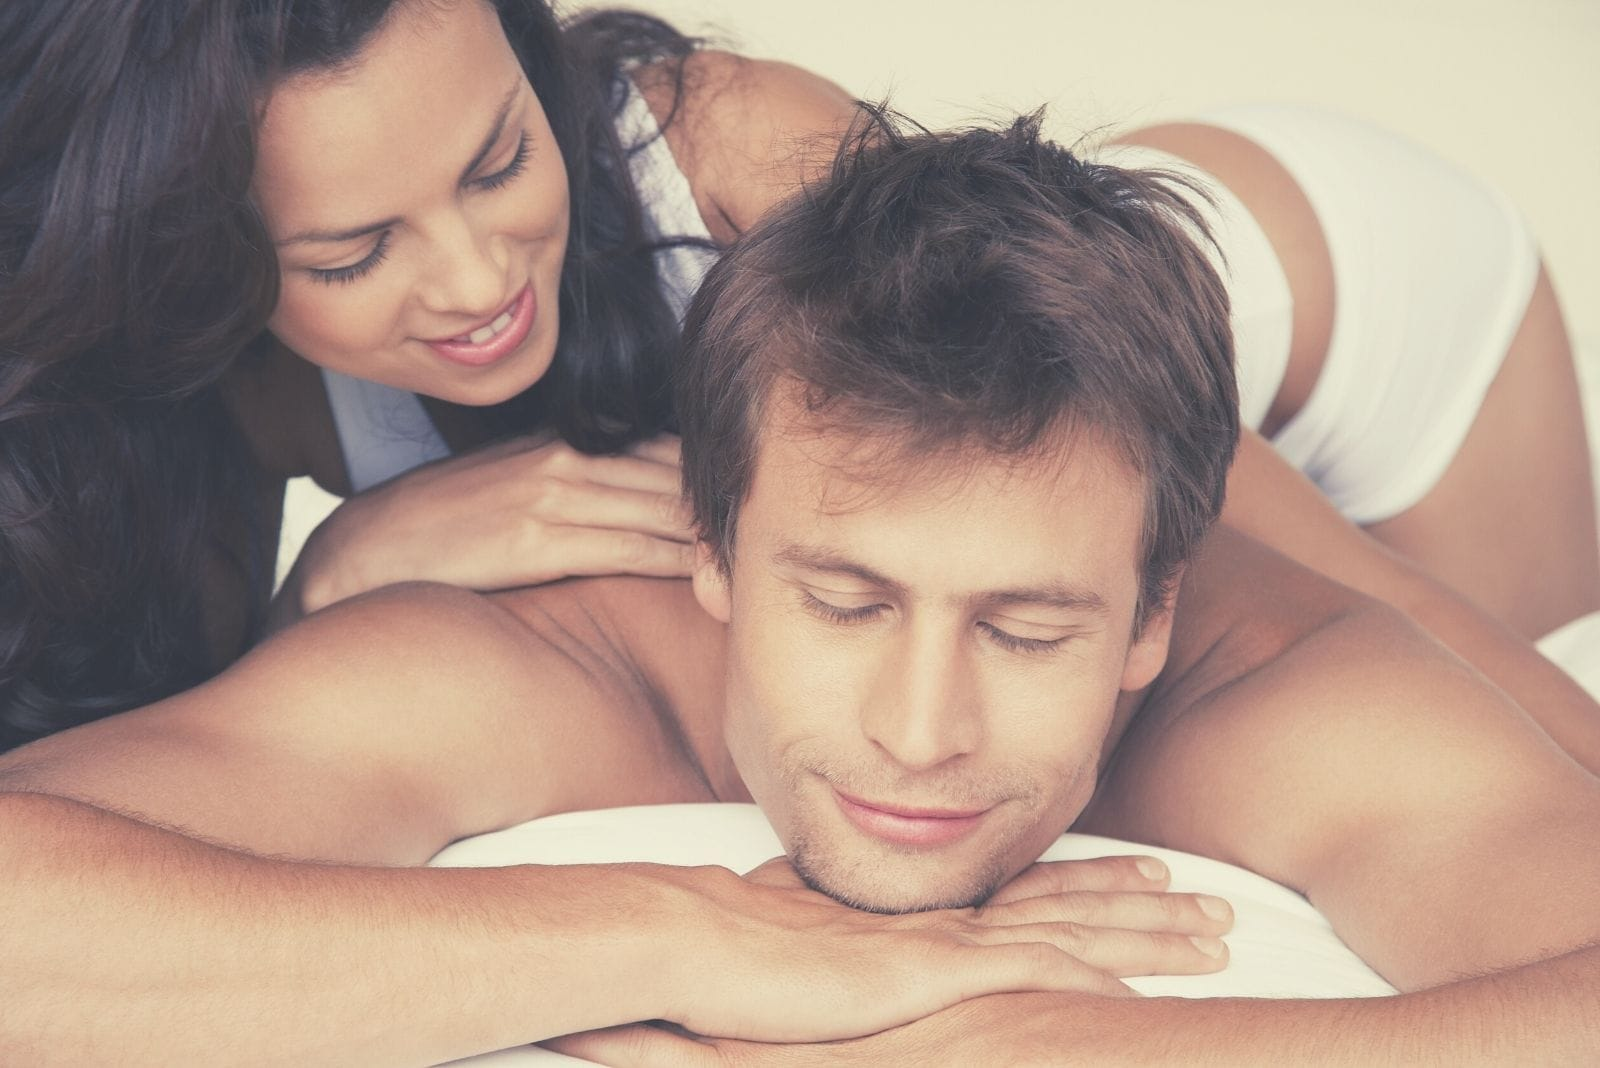 wife giving massage to her husband closing his eyes lying down